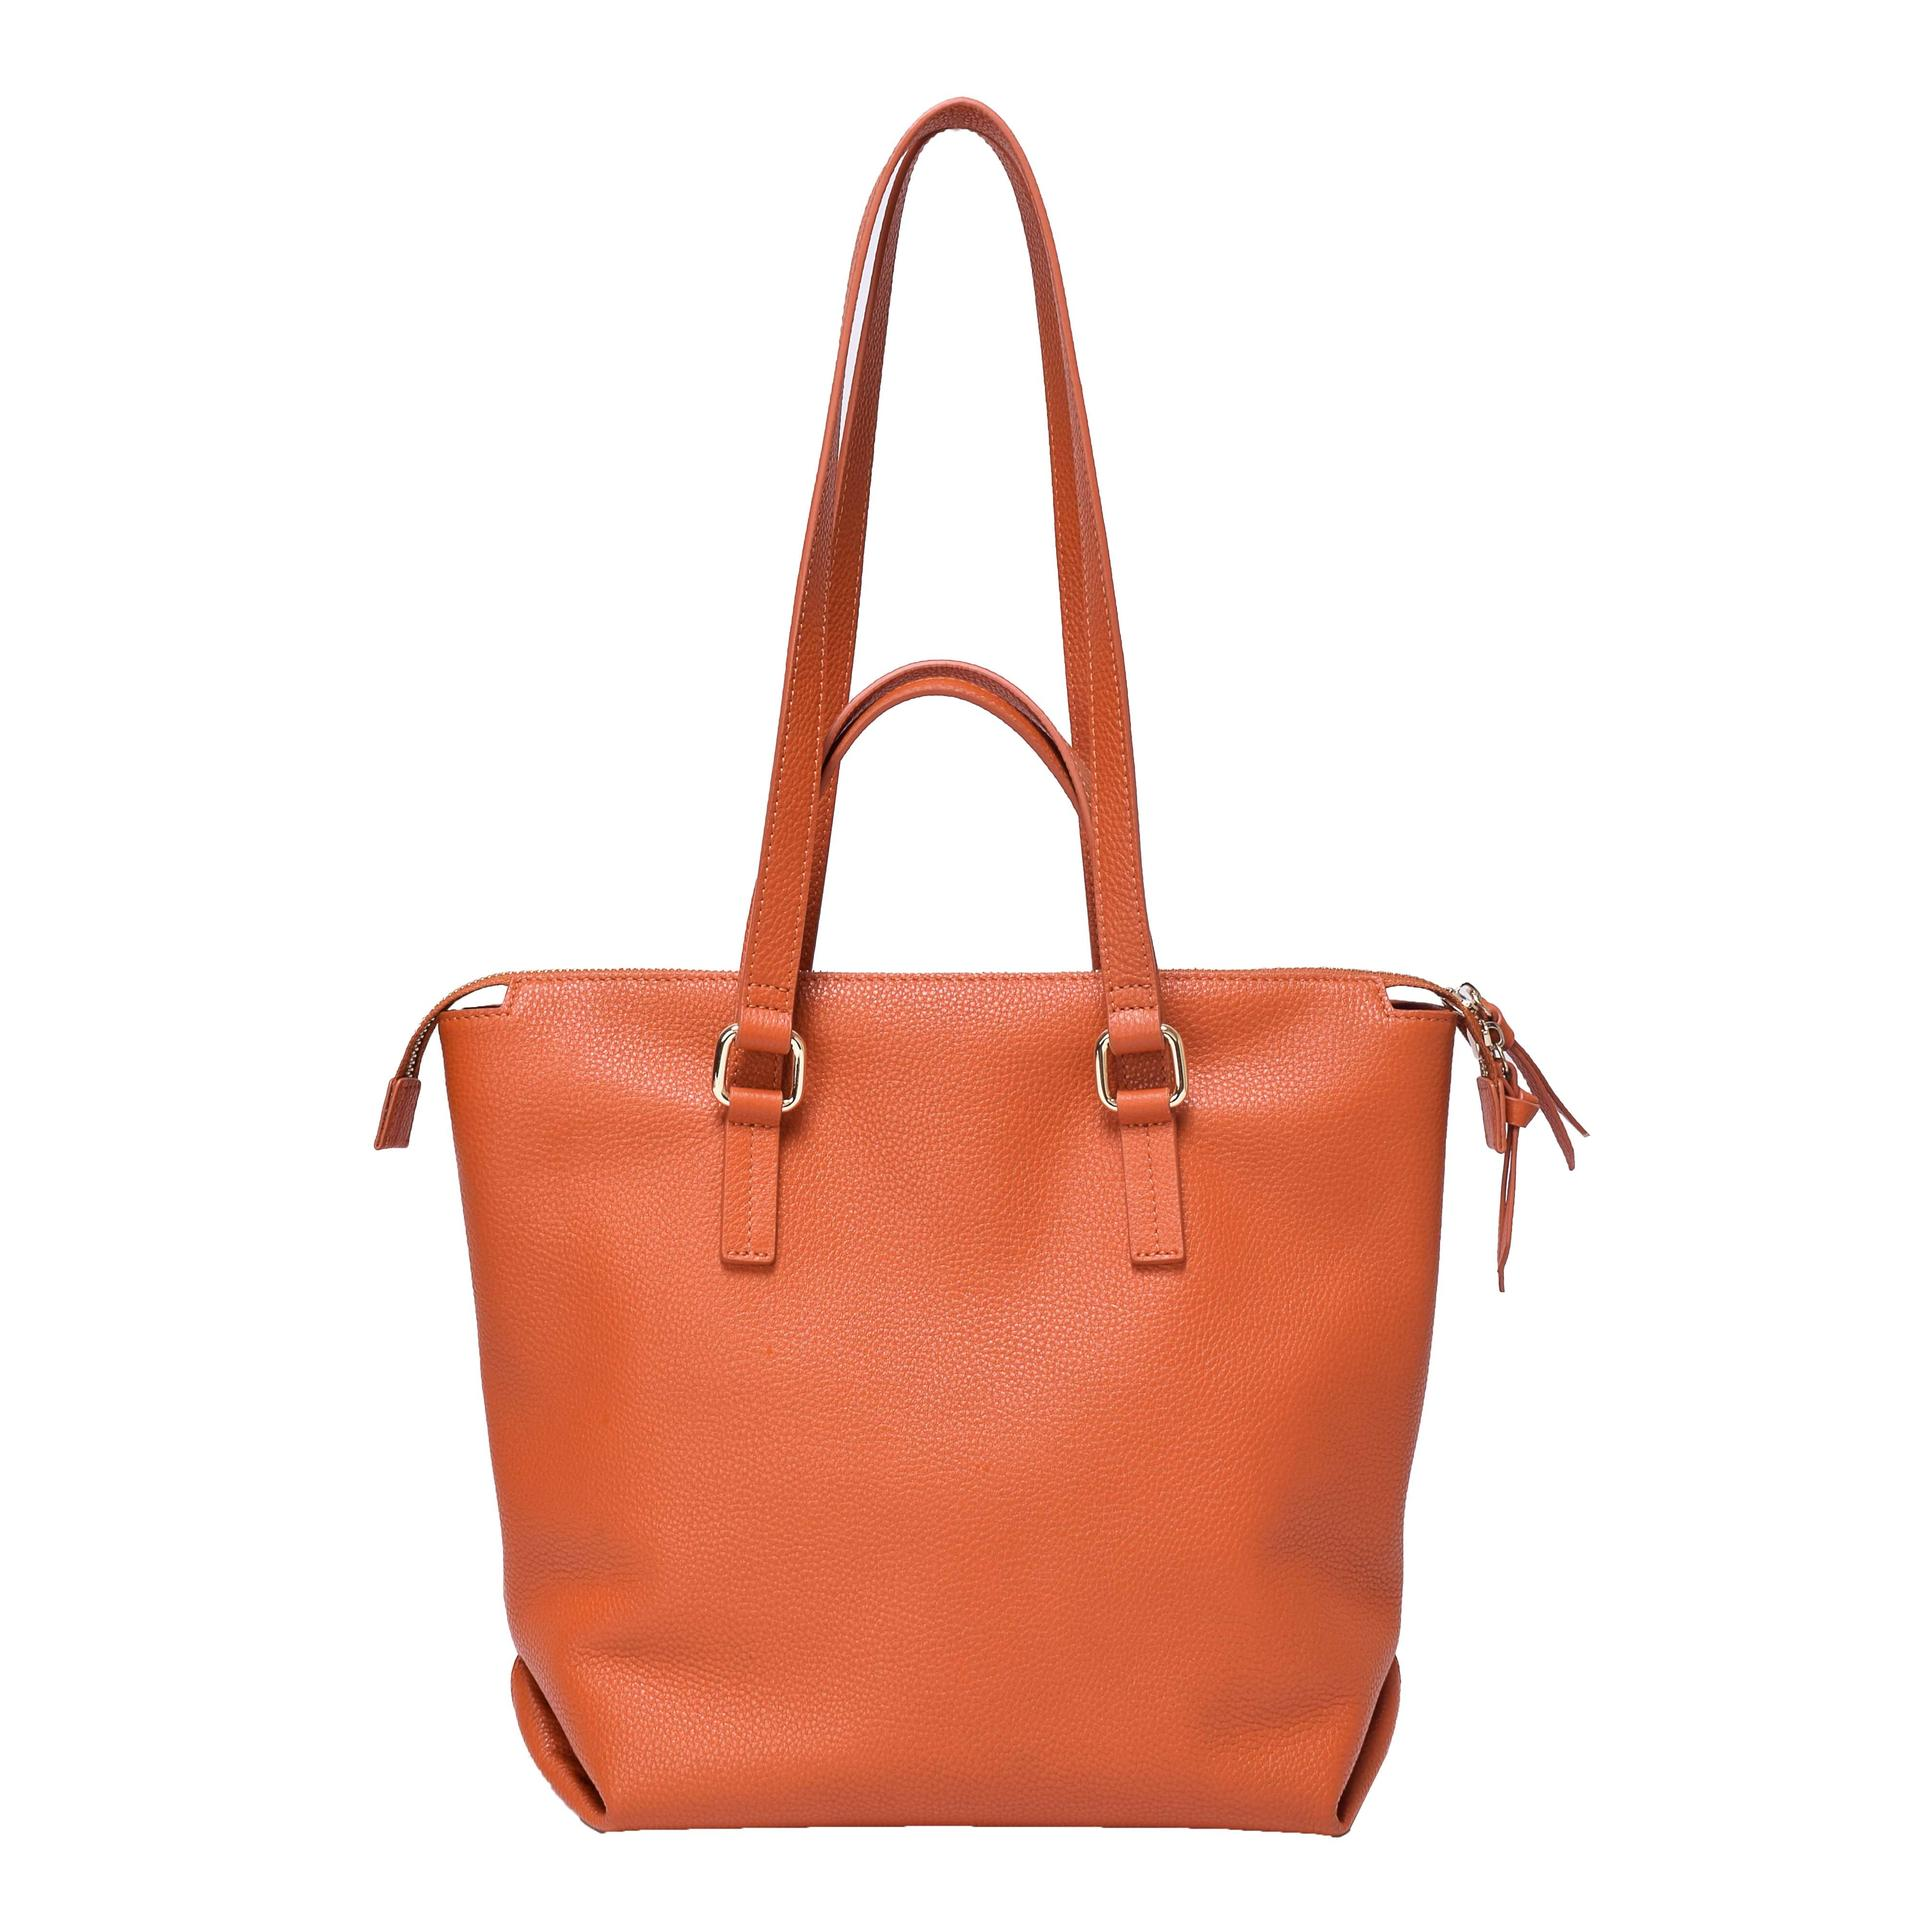 Leather tote bag shoulder handbag for ladies